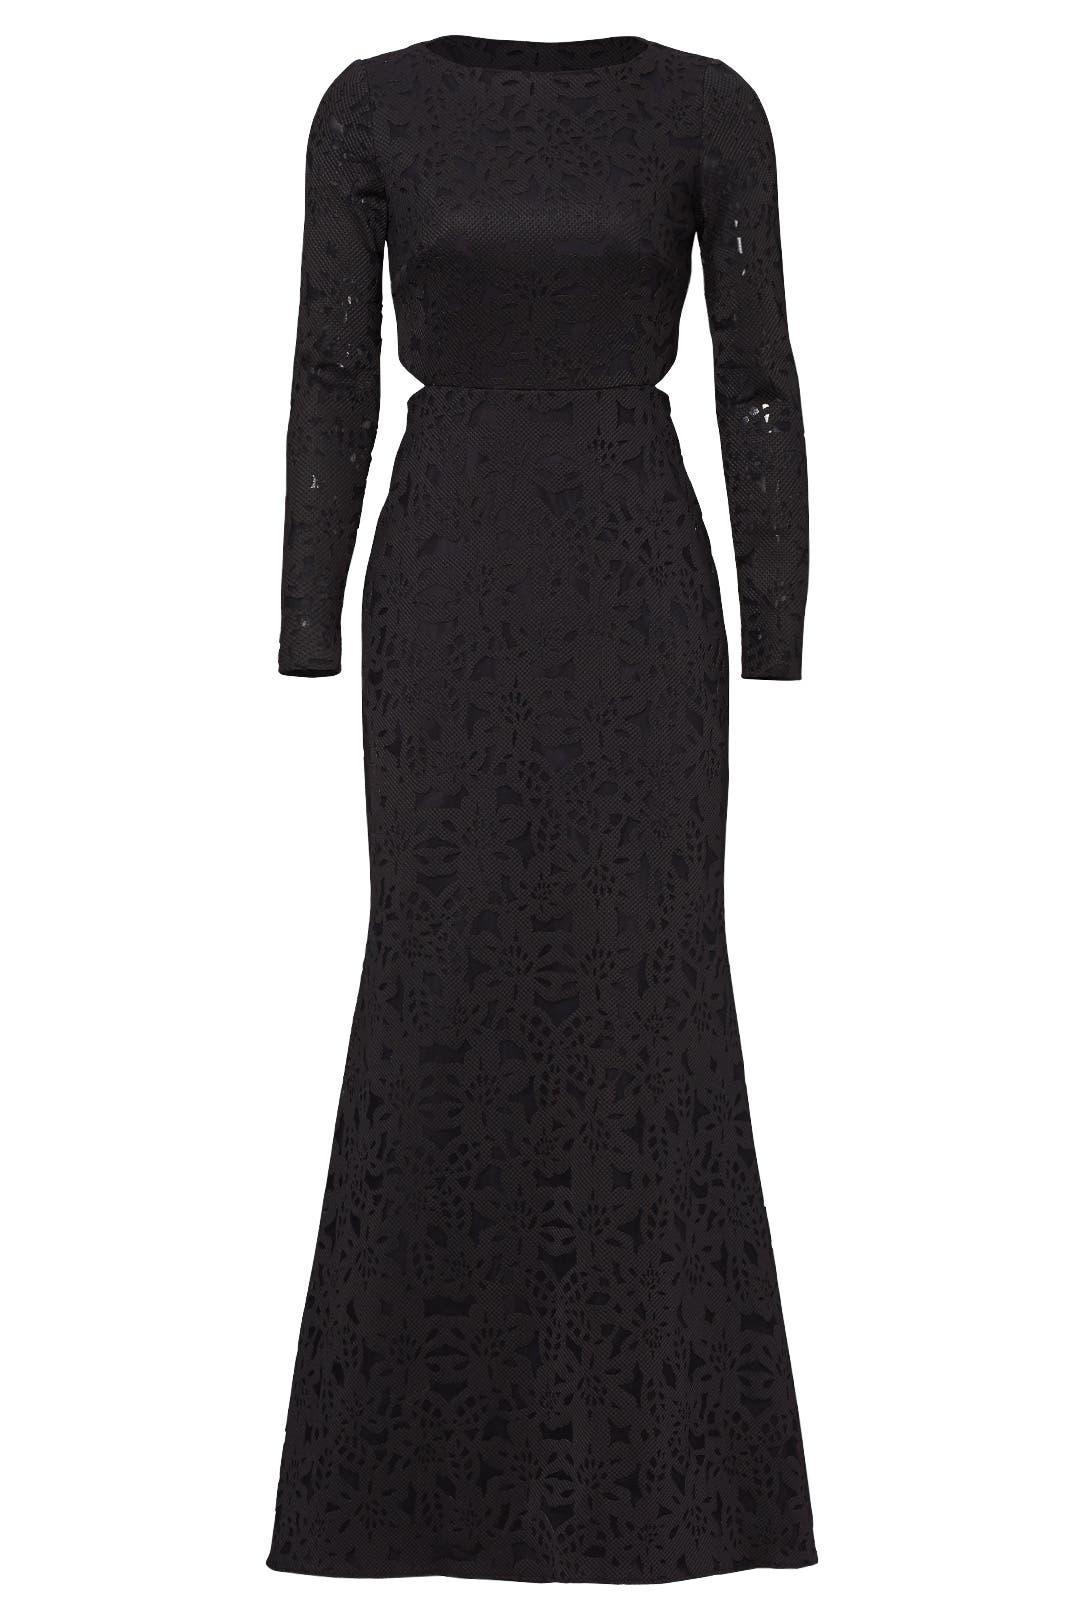 Black Floral Shadow Gown by ML Monique Lhuillier for $140   Rent the ...